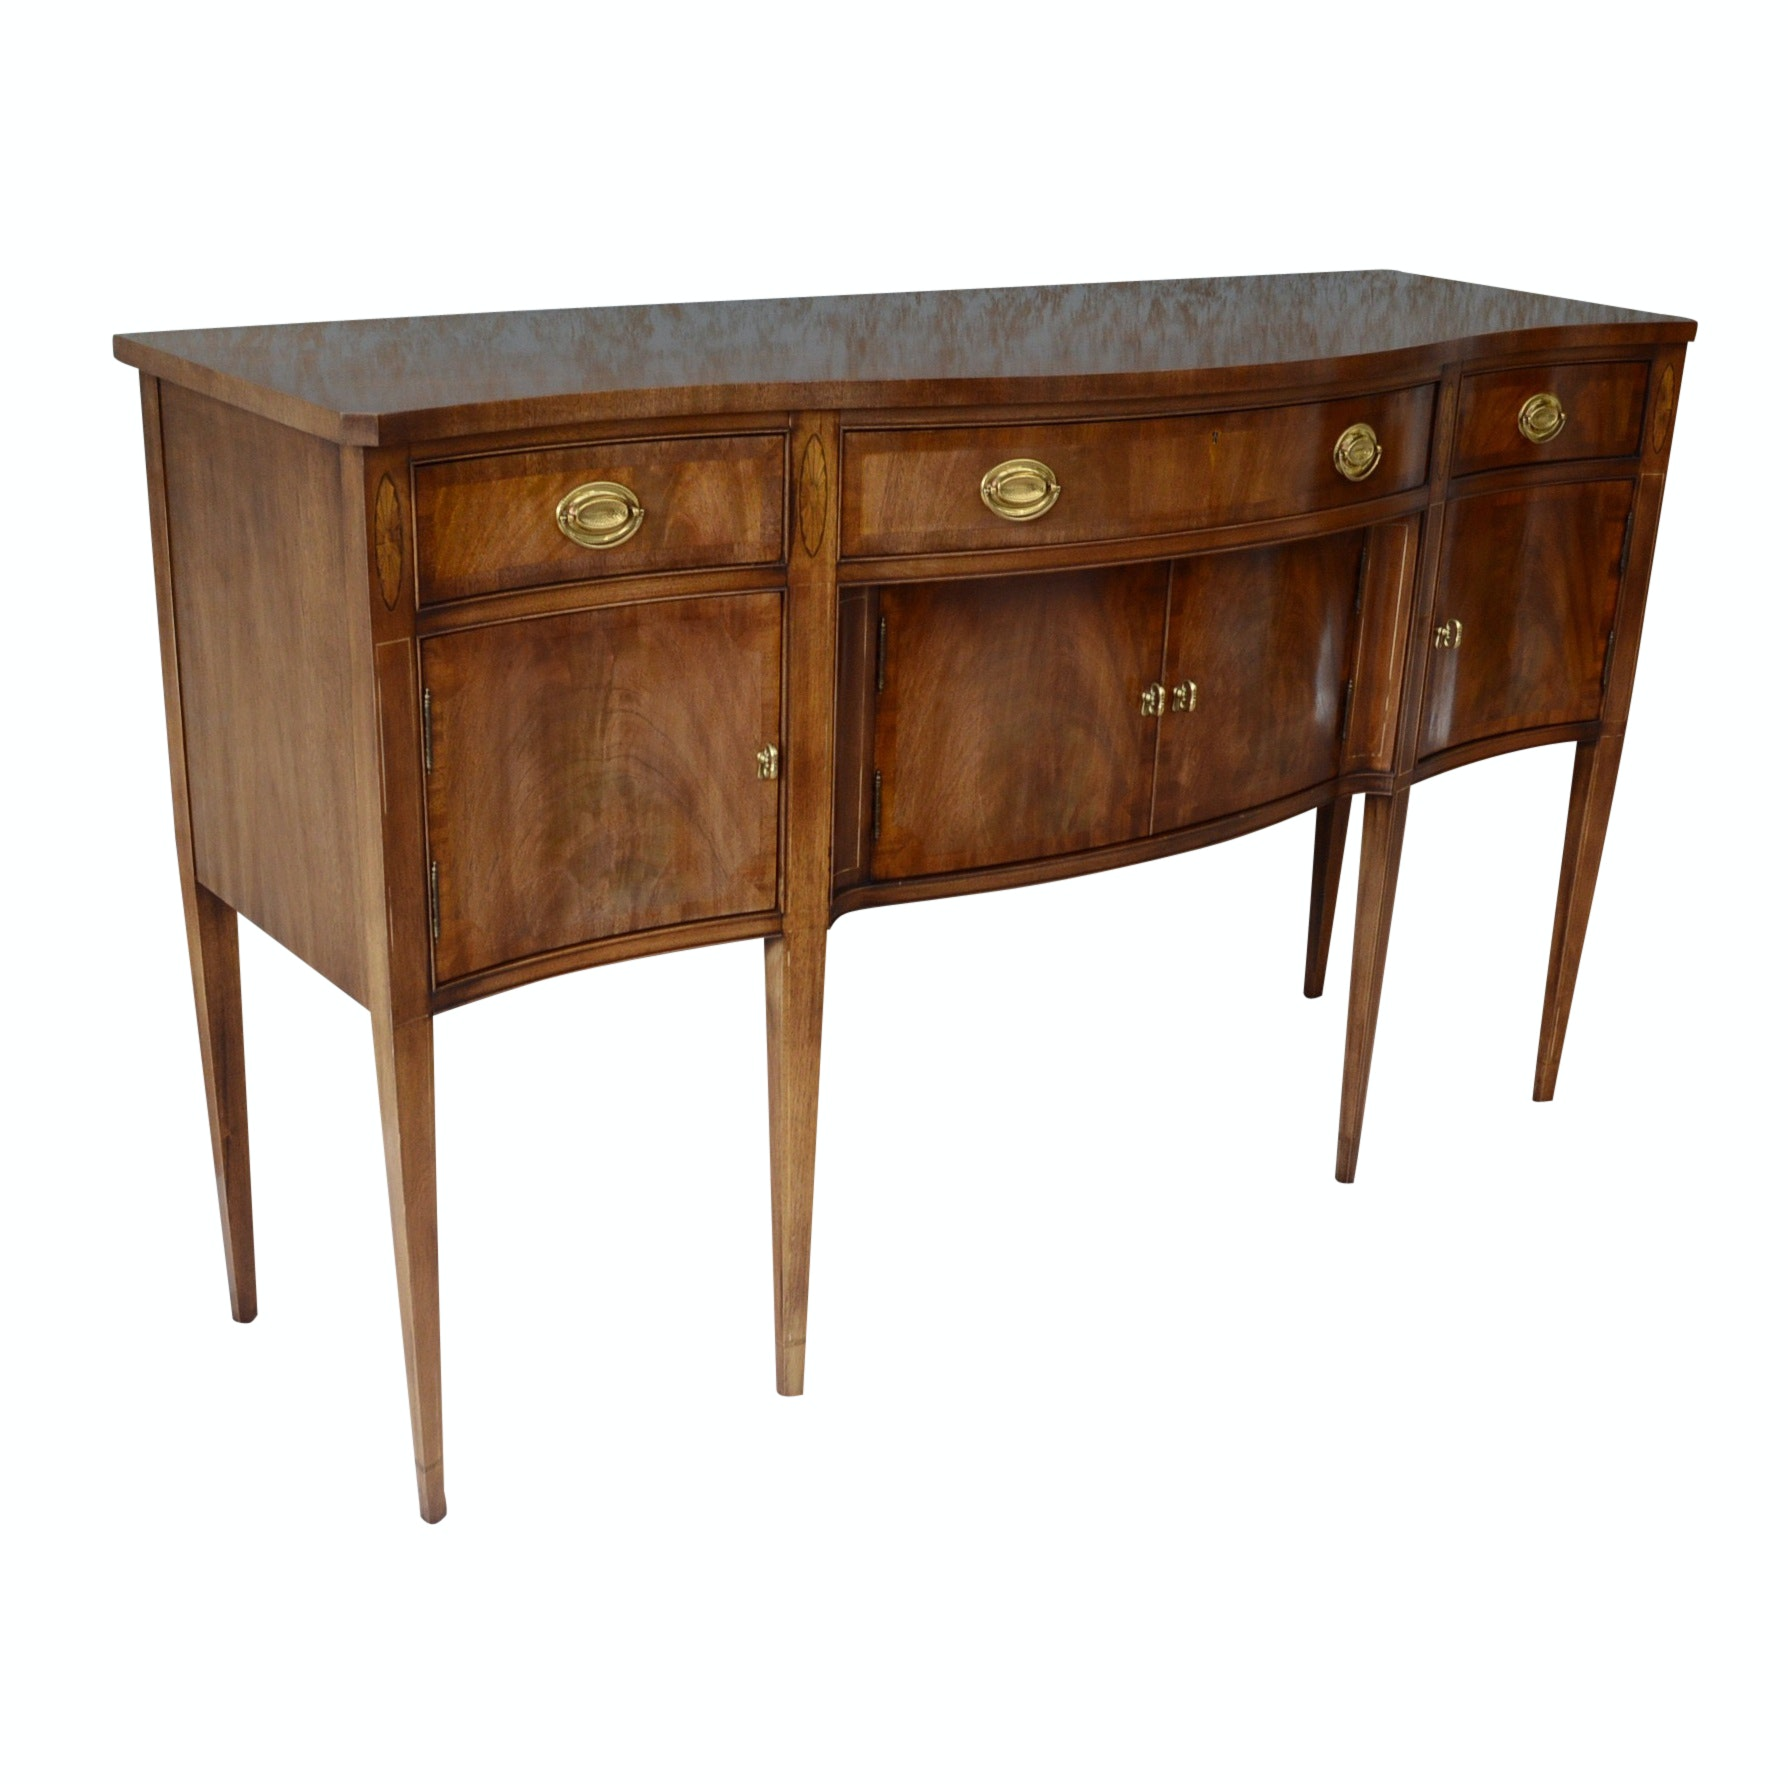 Mahogany Federal Style Sideboard by Hickory Chair